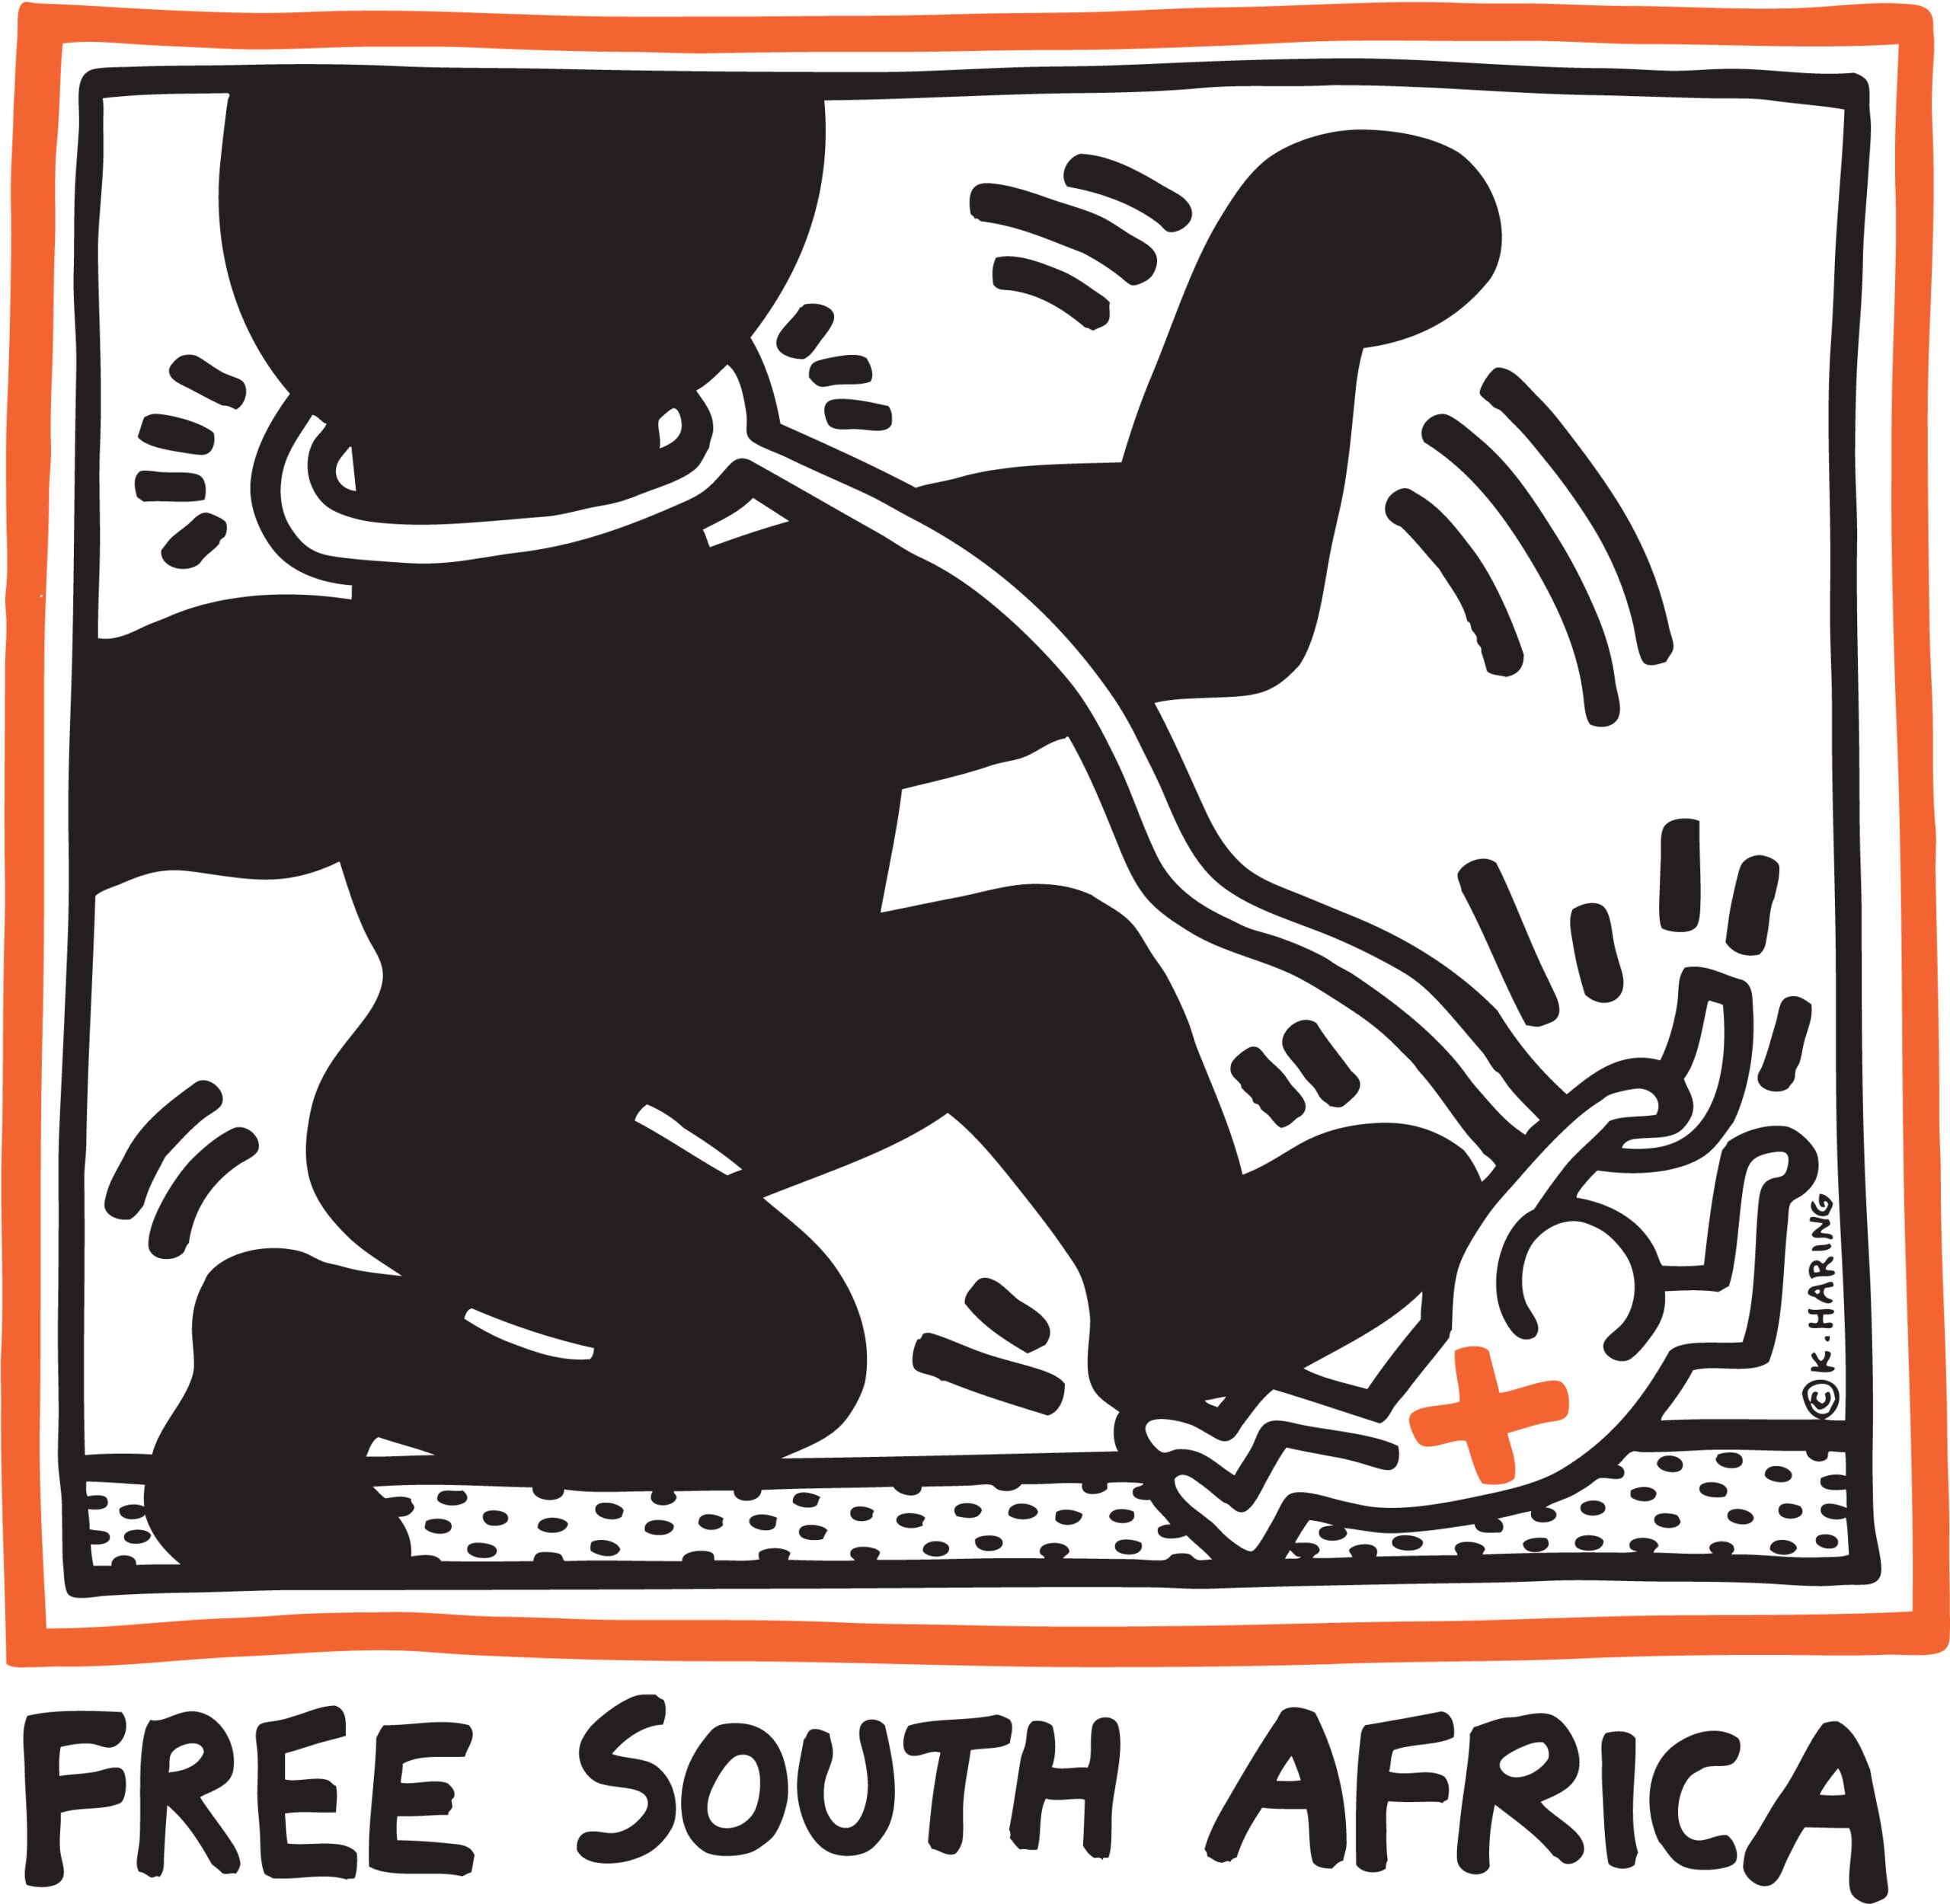 A poster by Keith Haring that says Free South Africa at bottom. The square image above it has a black and red square outline. Within that frame is a large black silhouette of human that has a white rope-like object circling its neck and it extends like a rope downward to the hand of a white figure. The black figure is kicking the smaller white figure down. The white figure has a red x on its chest. The image implies movement with black dashes.